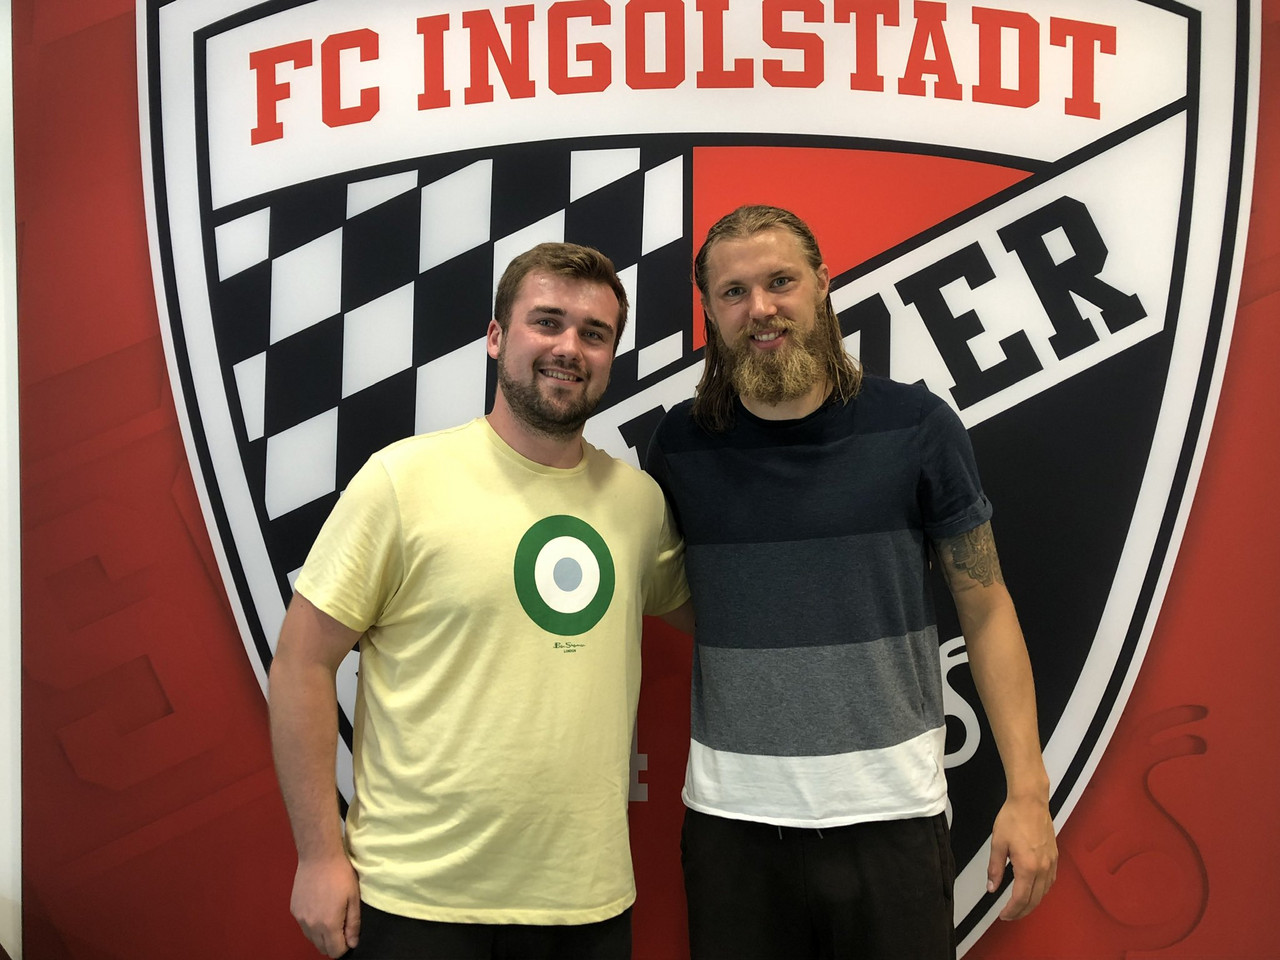 Ingolstadt 04's only English member: A conversation with Alex Howell